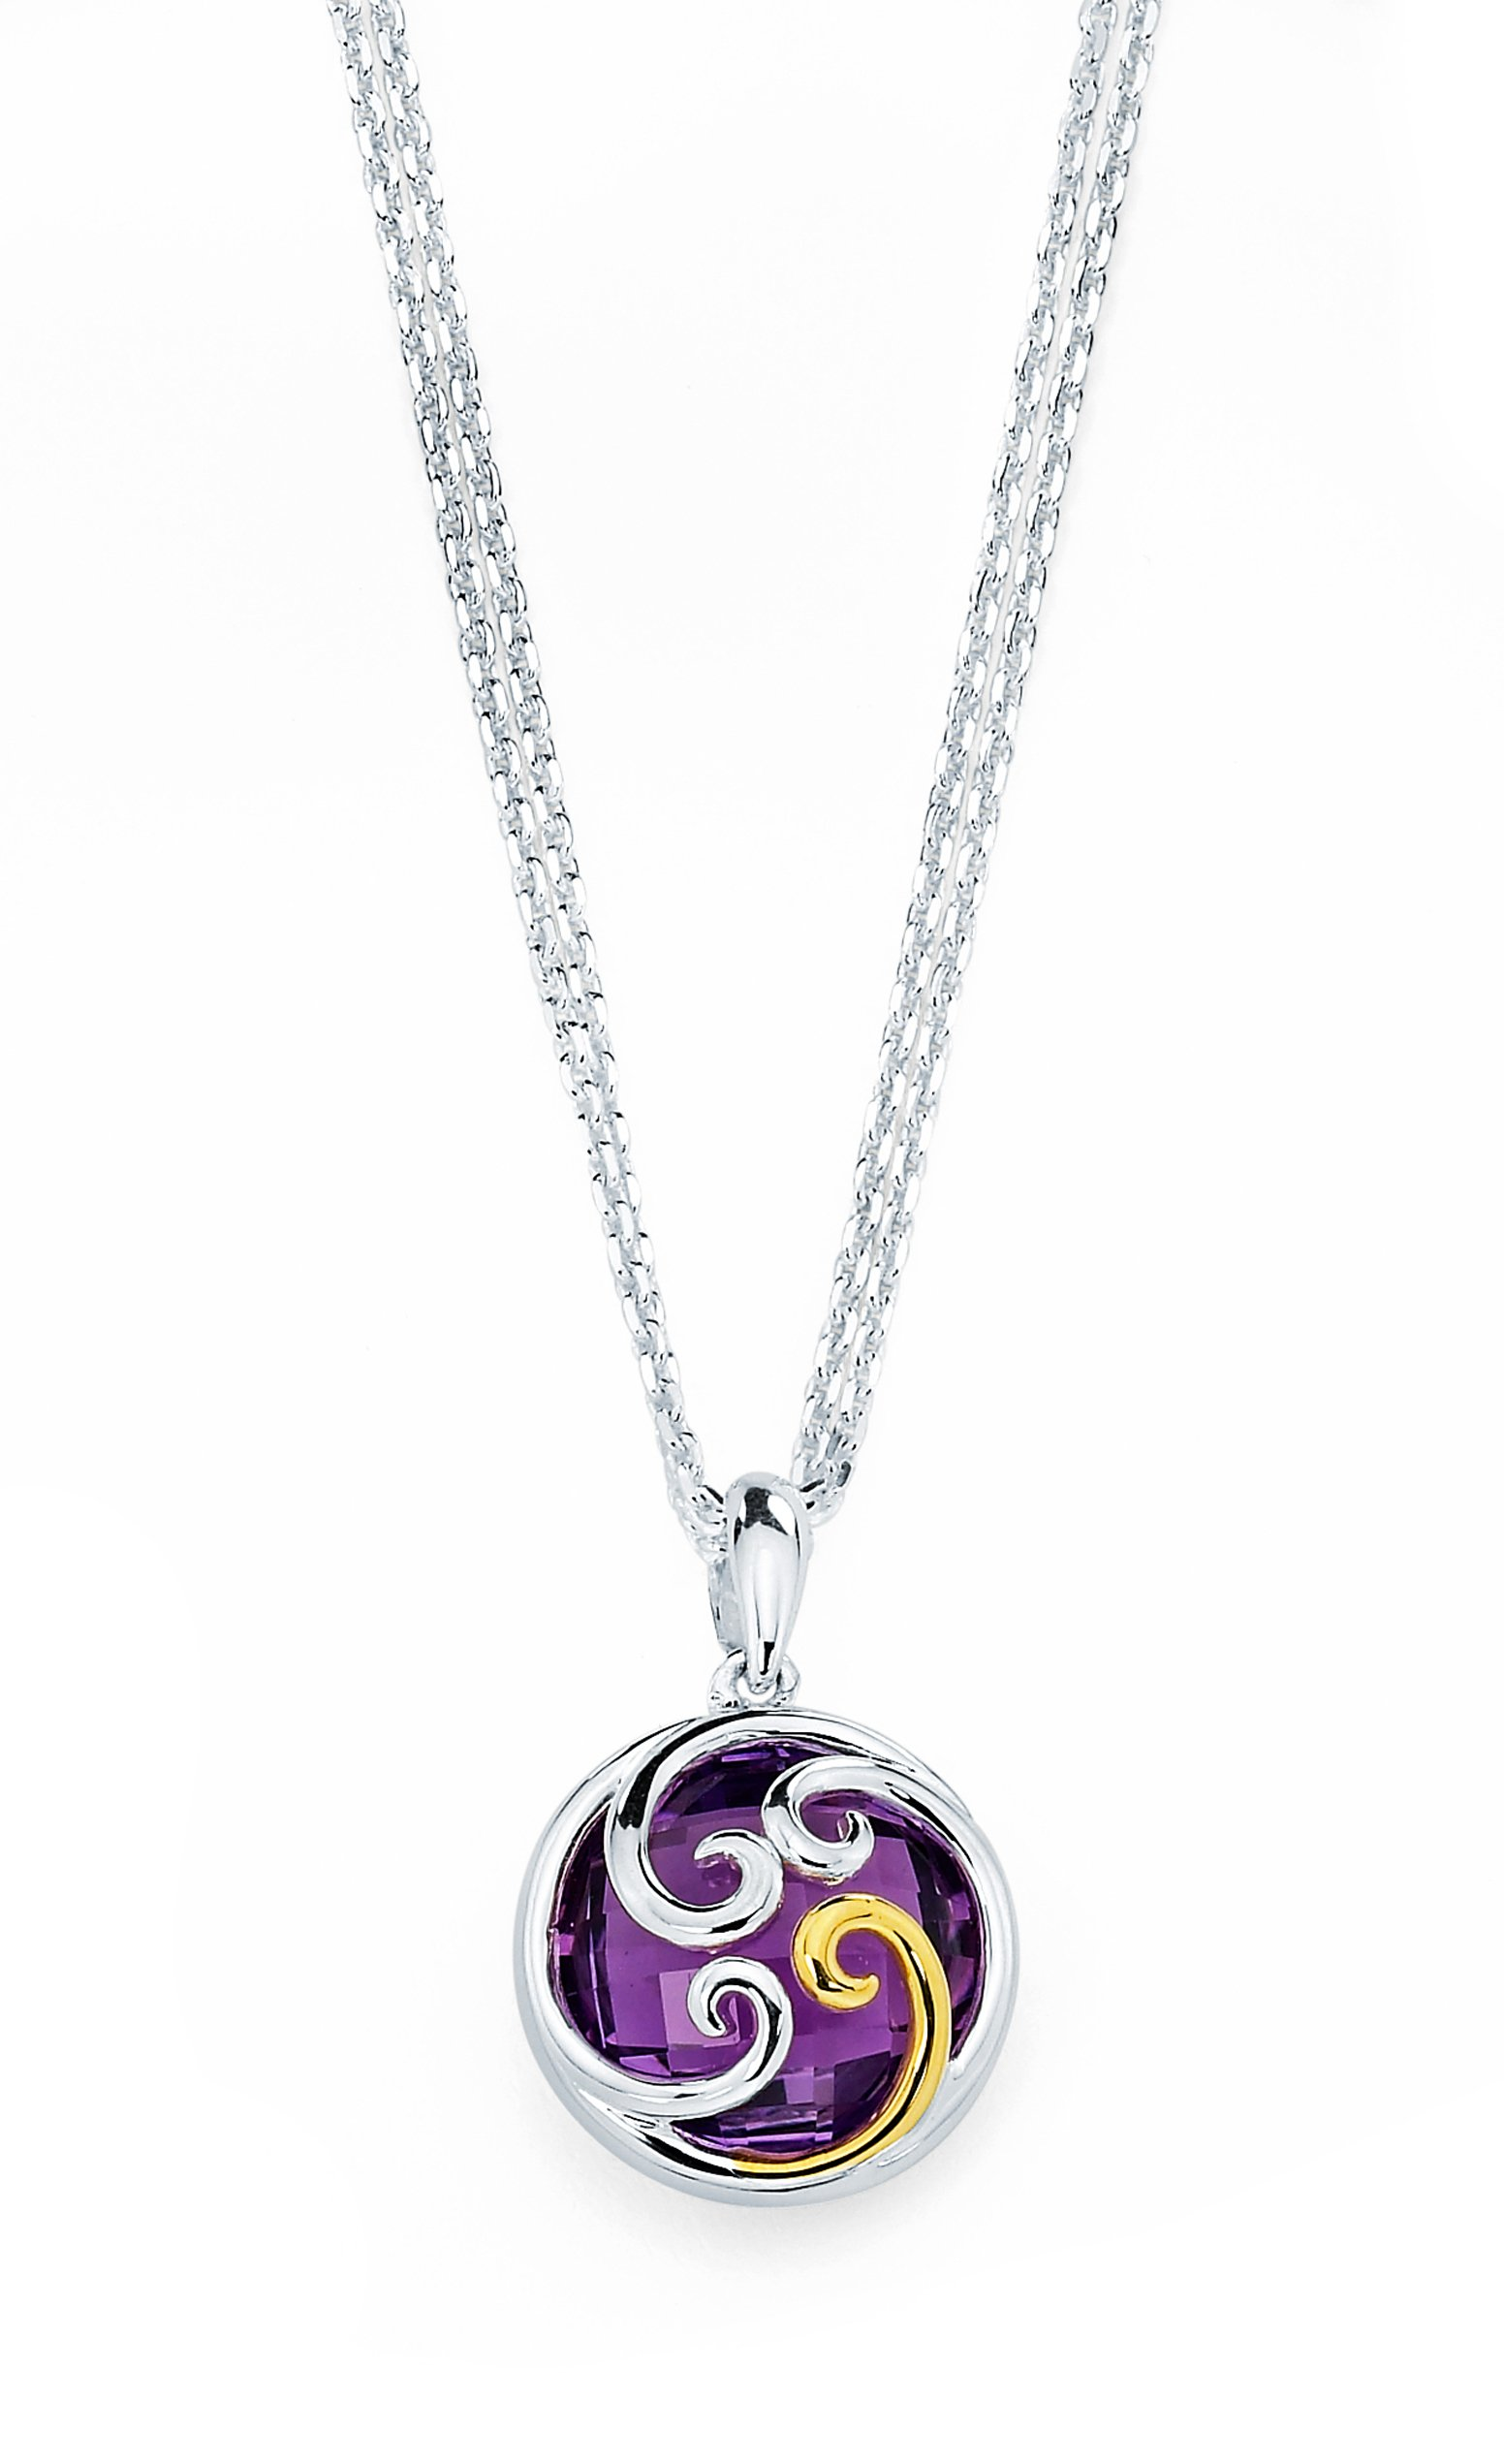 18K Gold and Sterling Silver Amethyst Gemstone Pendant Necklace, 17''